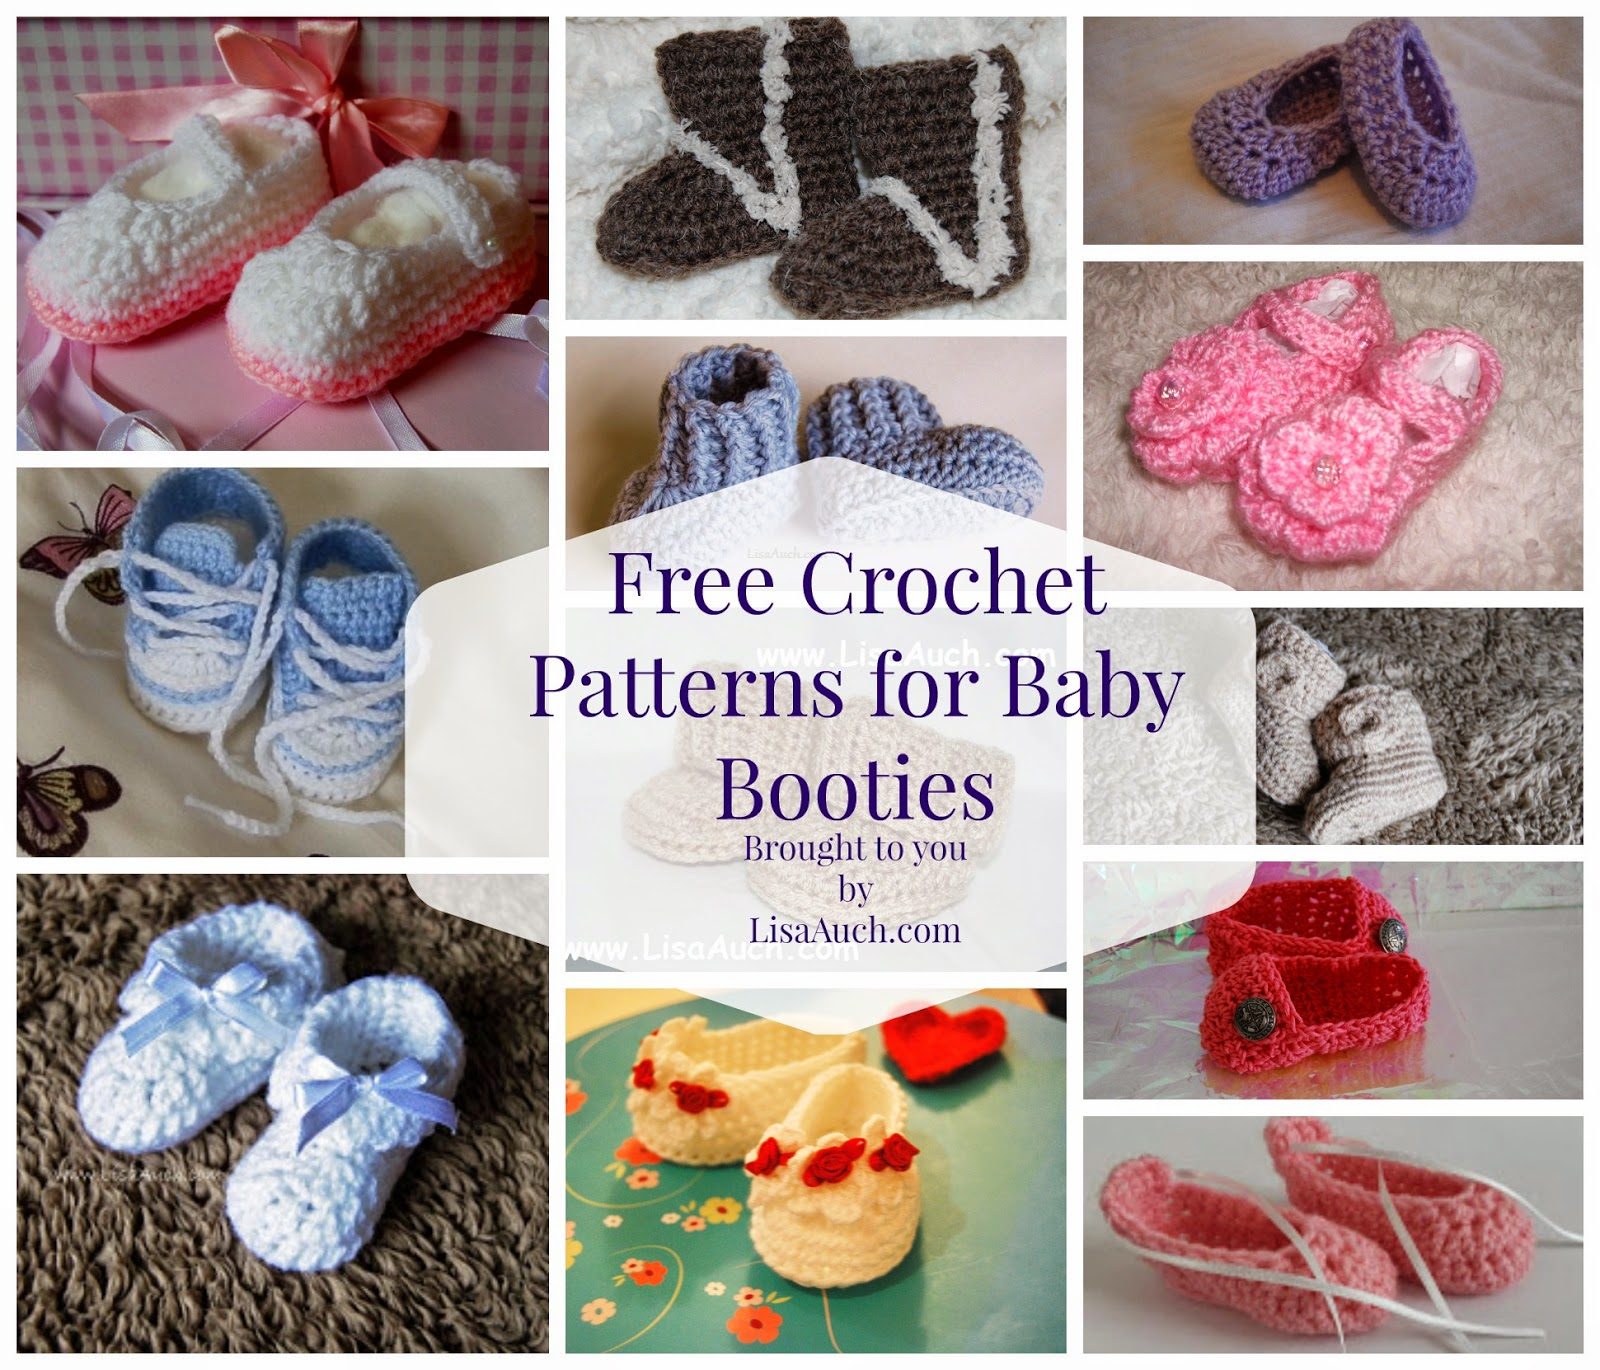 Free crochet patterns baby booties free crochet patterns and free crochet baby booties patterns baby booties free crochet patterns bankloansurffo Image collections